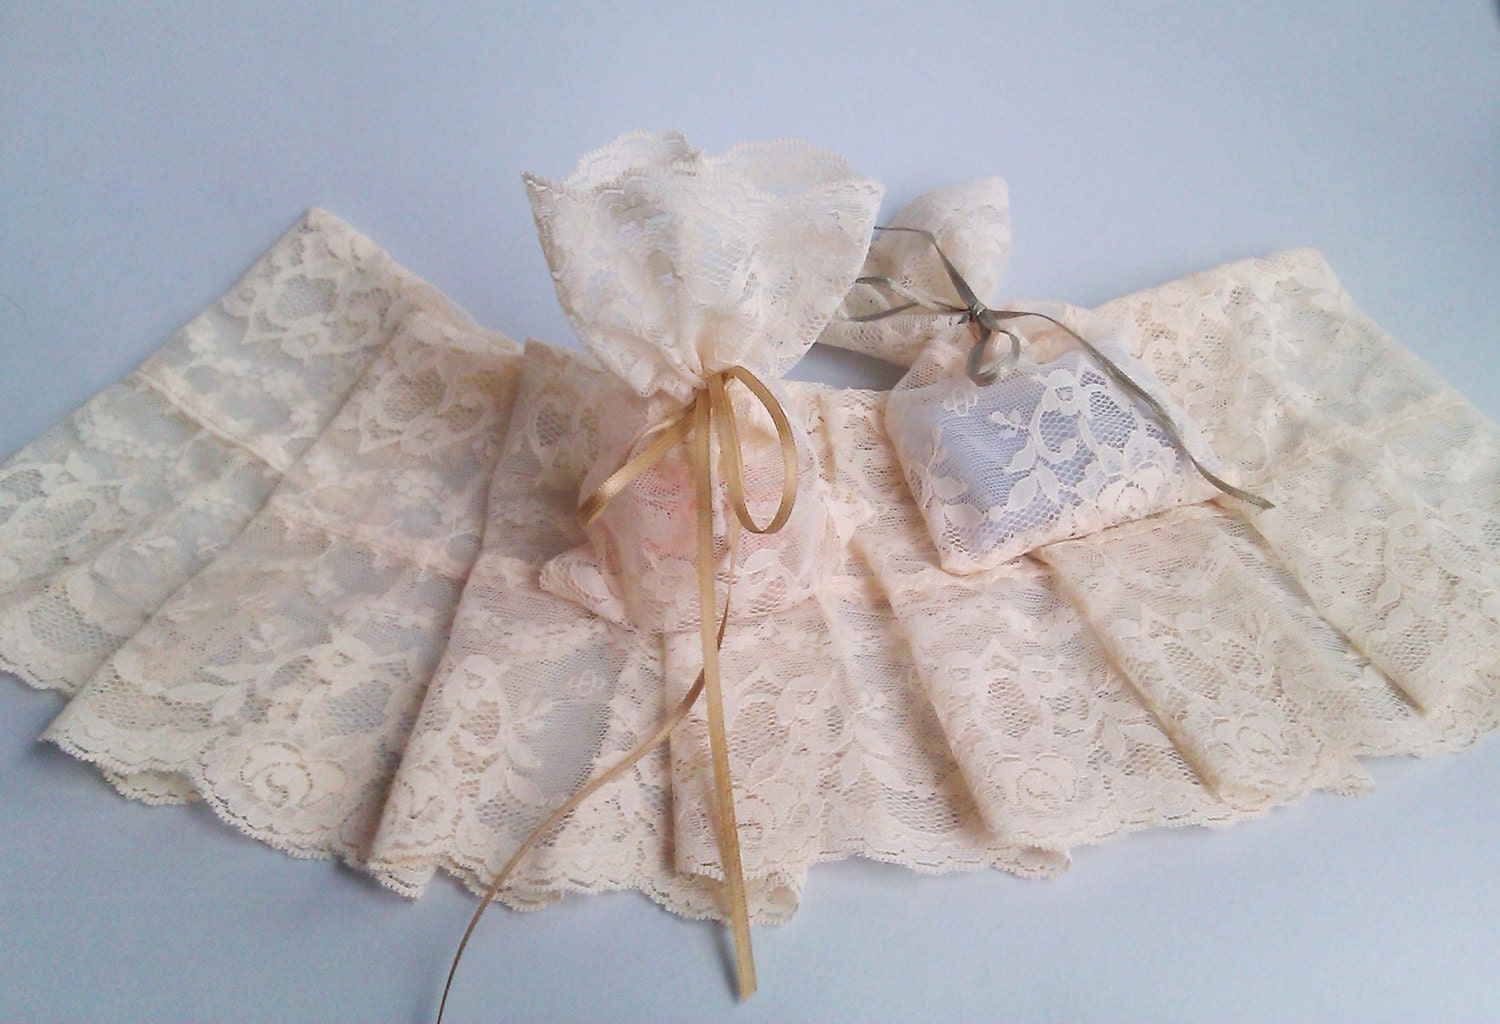 Wedding Favor Bags Lace : One-Of-A-Kind Party Favor Bags Lace Wedding Favor by AlMercatino